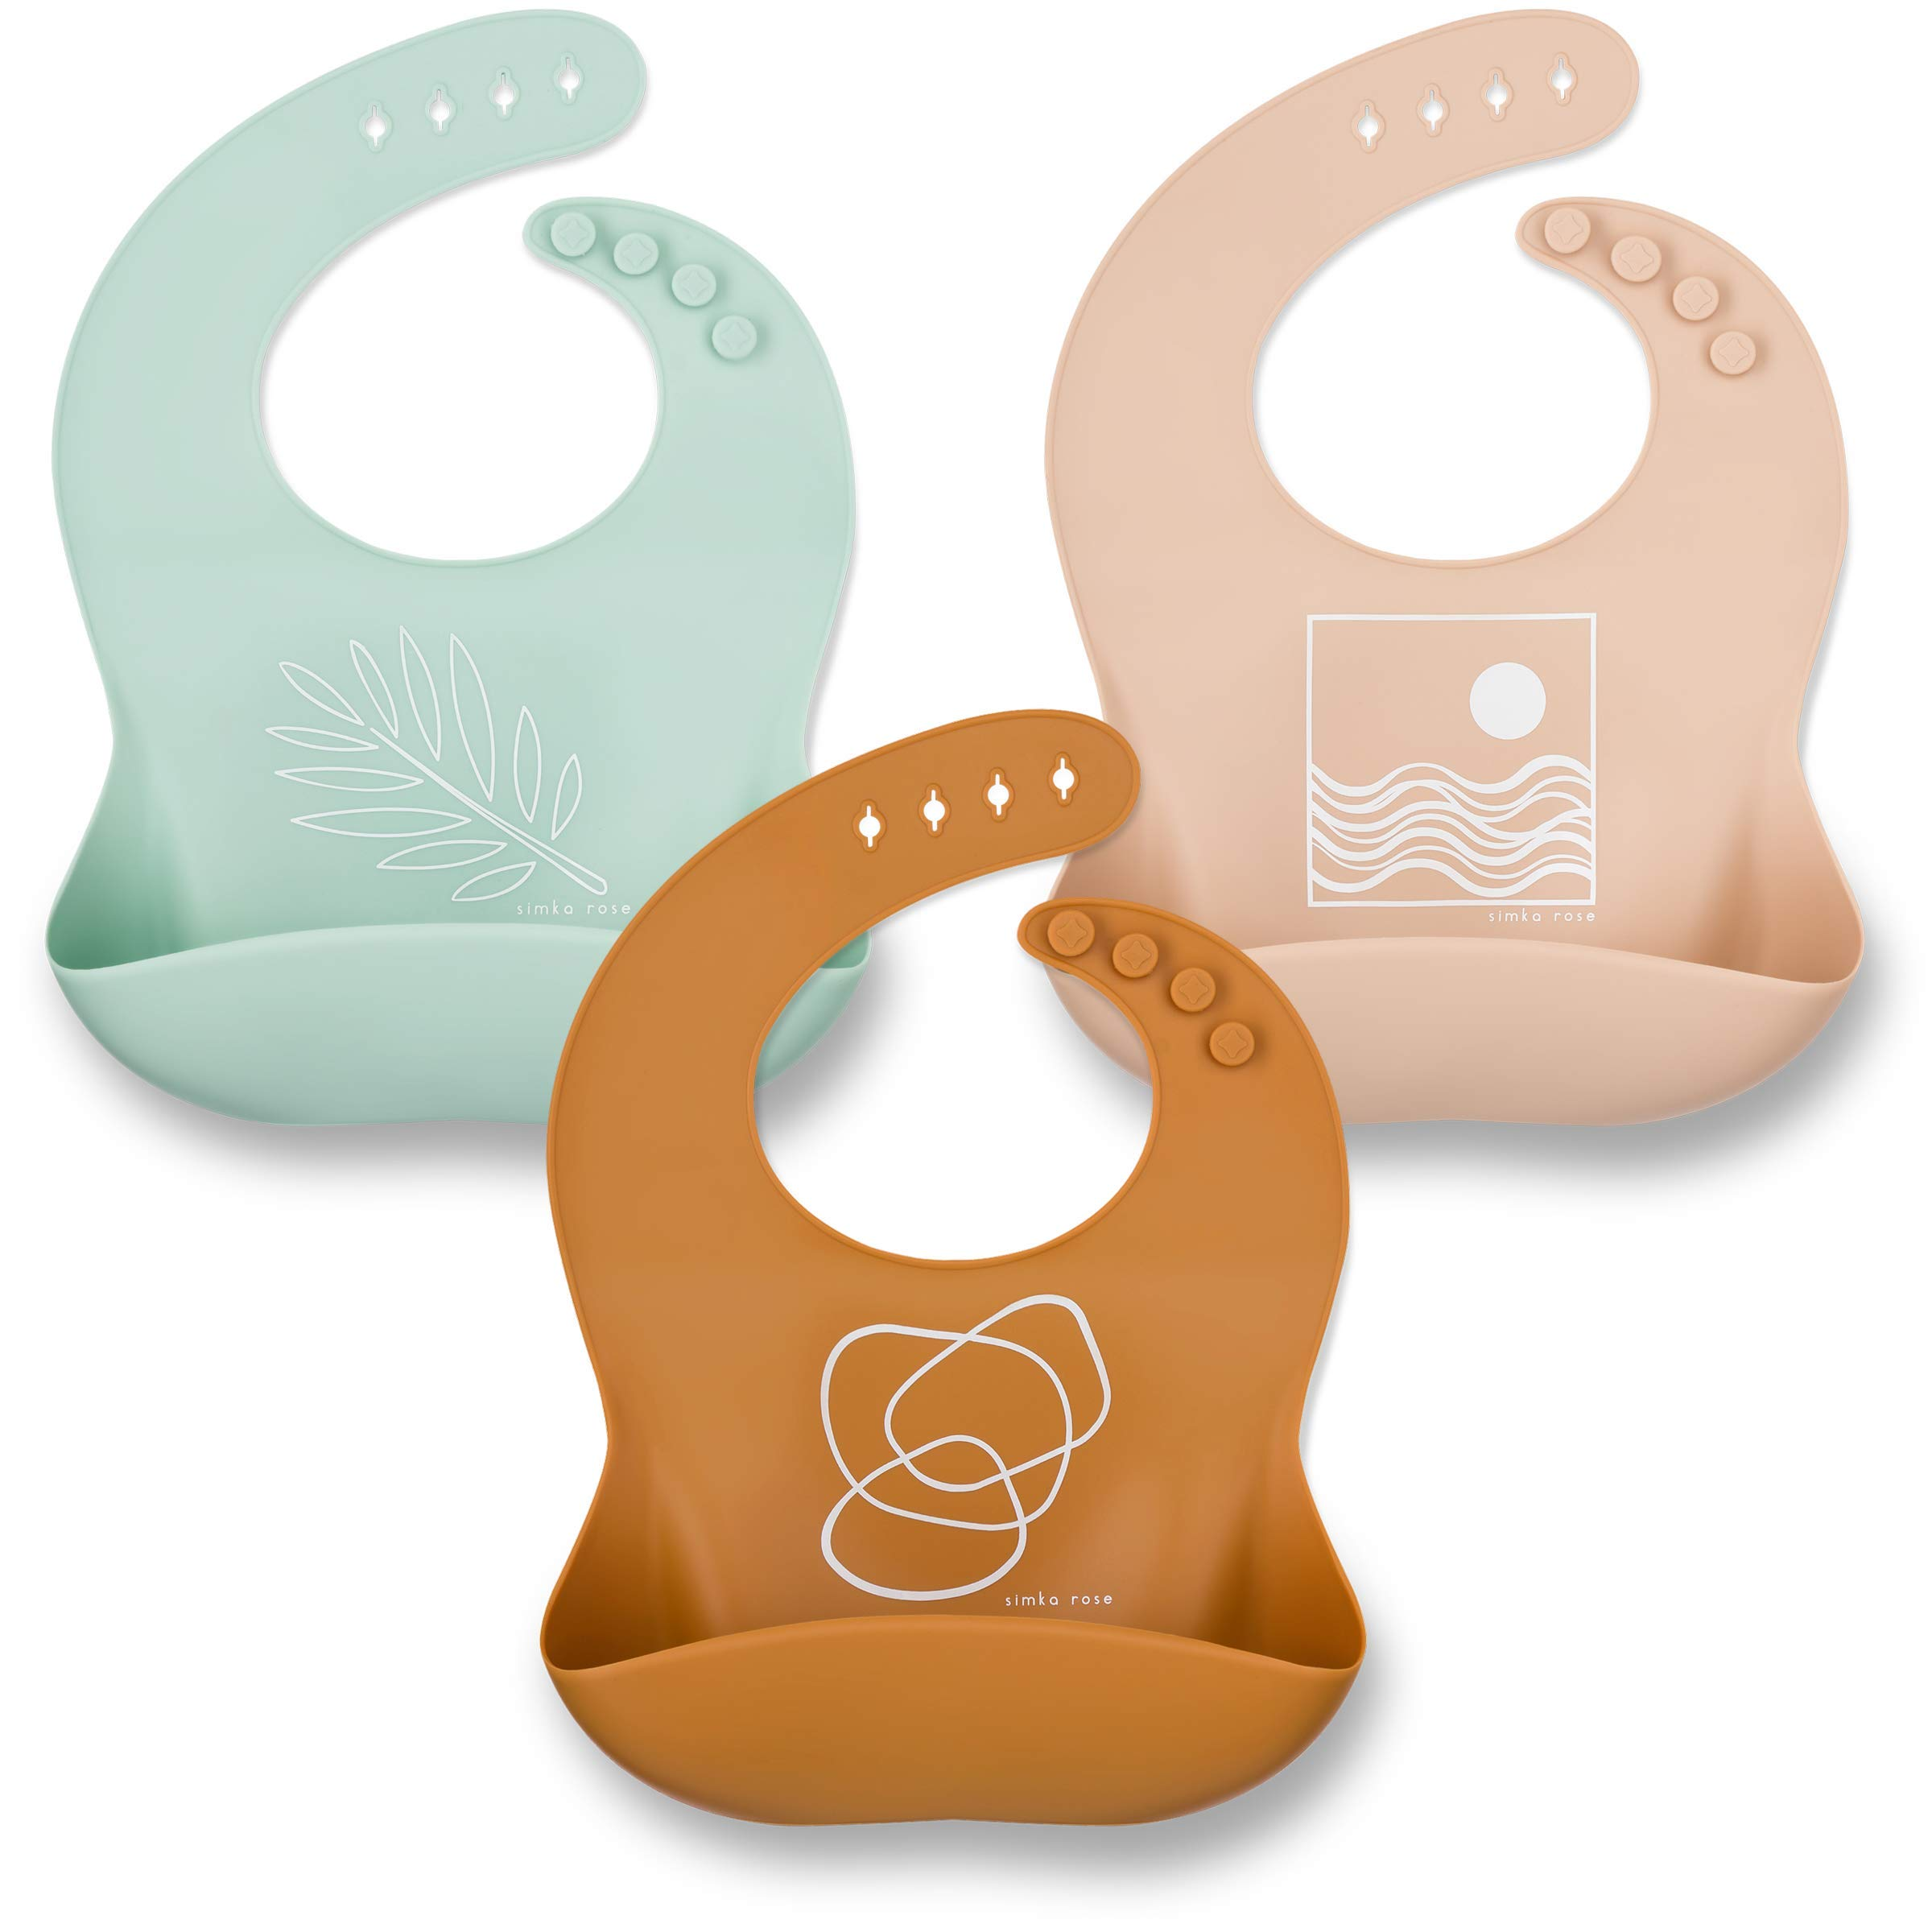 Simka Rose Silicone Bib - Waterproof Baby Bibs for Girls and Boys - Perfect for Babies and Toddlers - Easy to Clean Feeding Bibs - Set of 3 (Rust/Sand/Sage) by Simka Rose